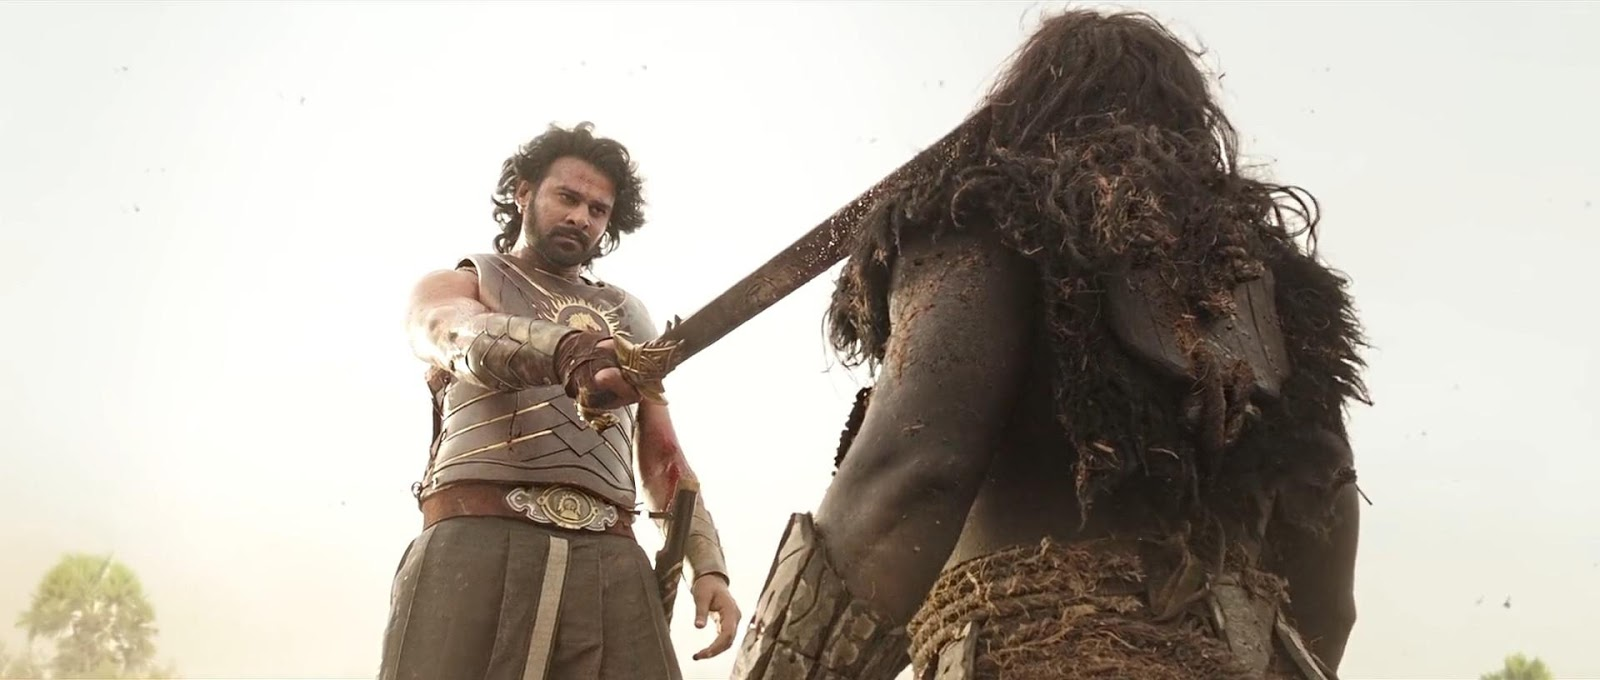 Bahubali hindi movie download 1080p : 3aw media release